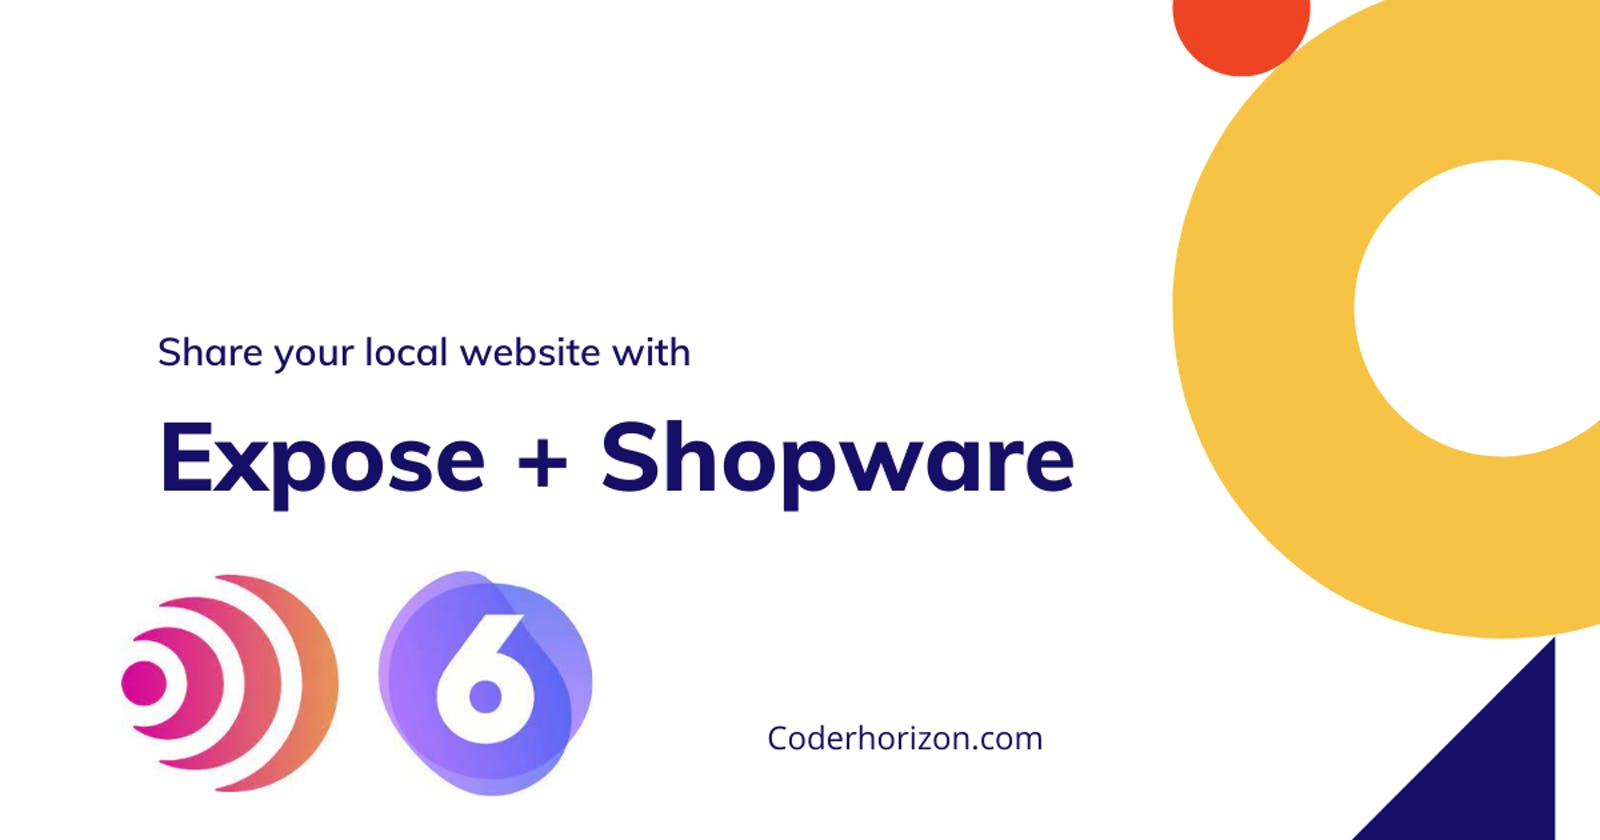 Share local Shopware with Expose to test on devices